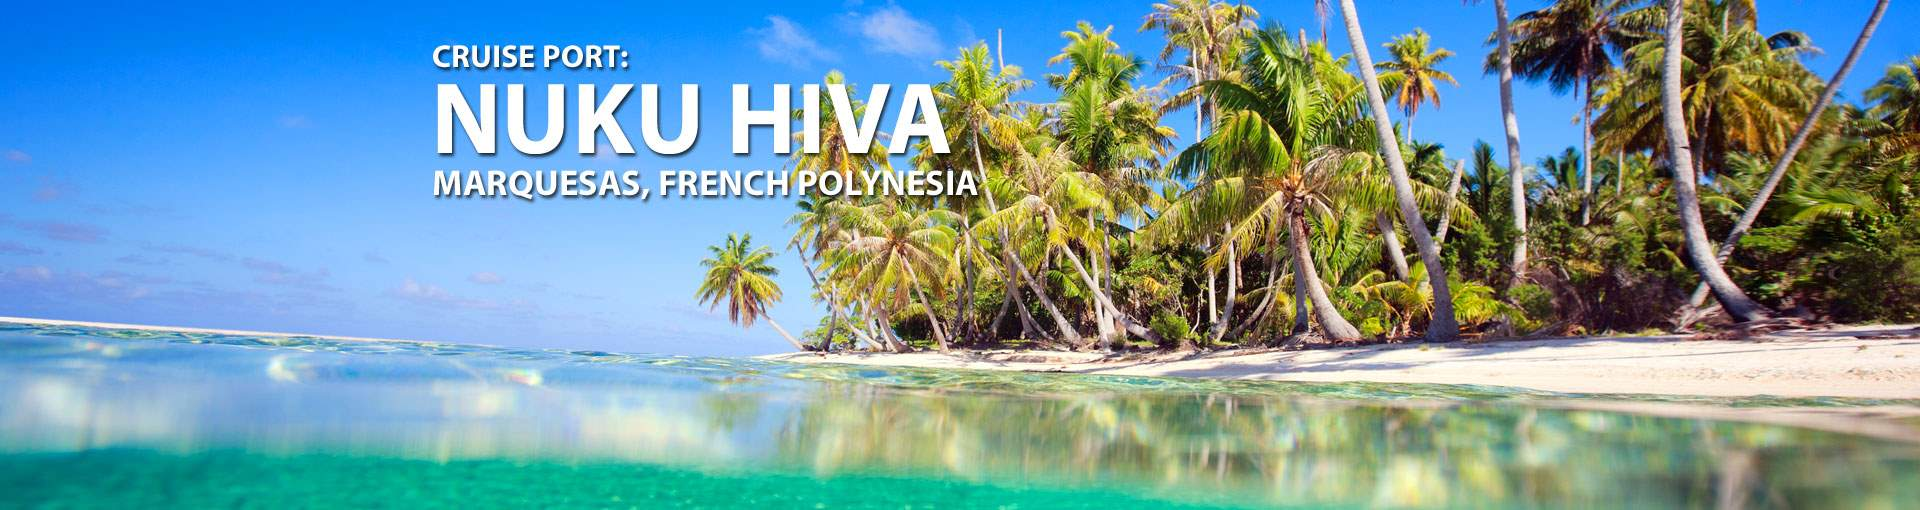 Cruises to Nuku Hiva, Marquesas, French Polynesia